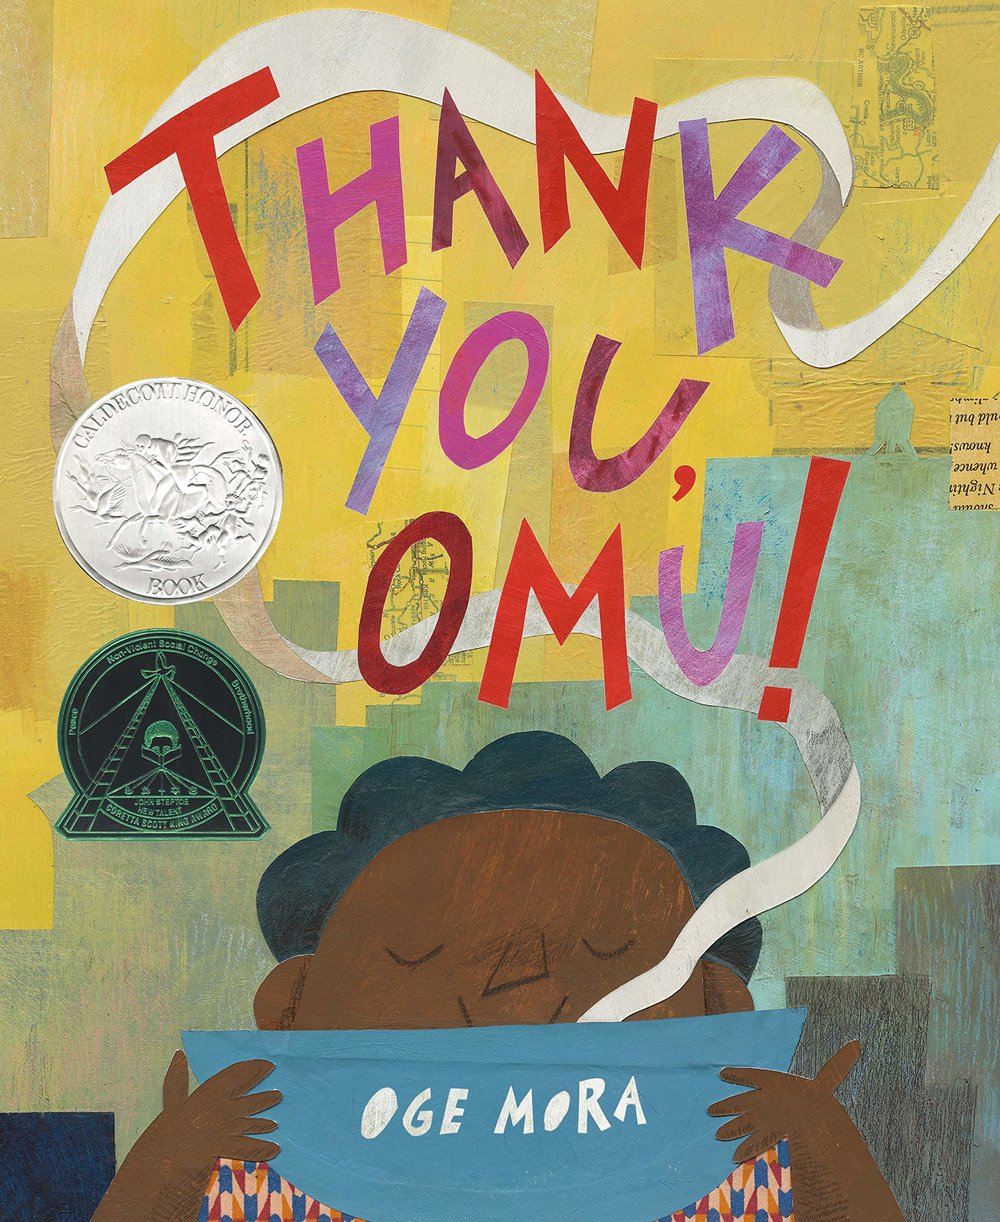 Thank You, Omu! was my favorite of the books selected this year. A simple story about what it means to live generously, this is a must read for kids of all ages and their adults. It's the kind of book that fills you up while you read. I loved it! -